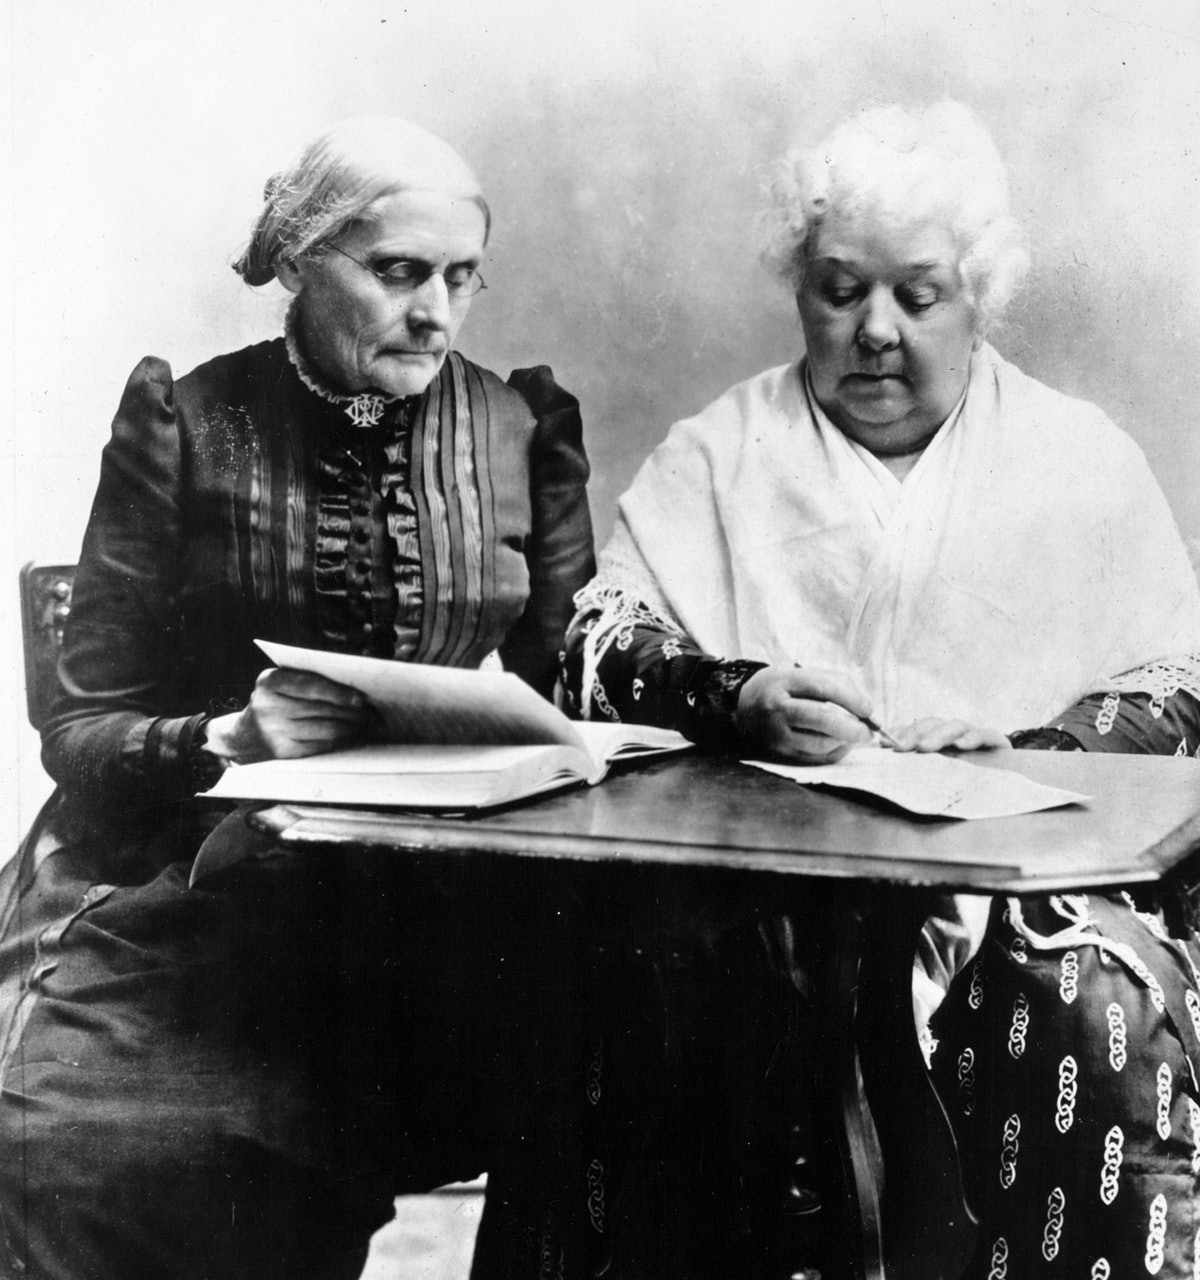 Elizabeth Cady Stanton writes the Declaration Of Sentiments during the history of women's suffrage.